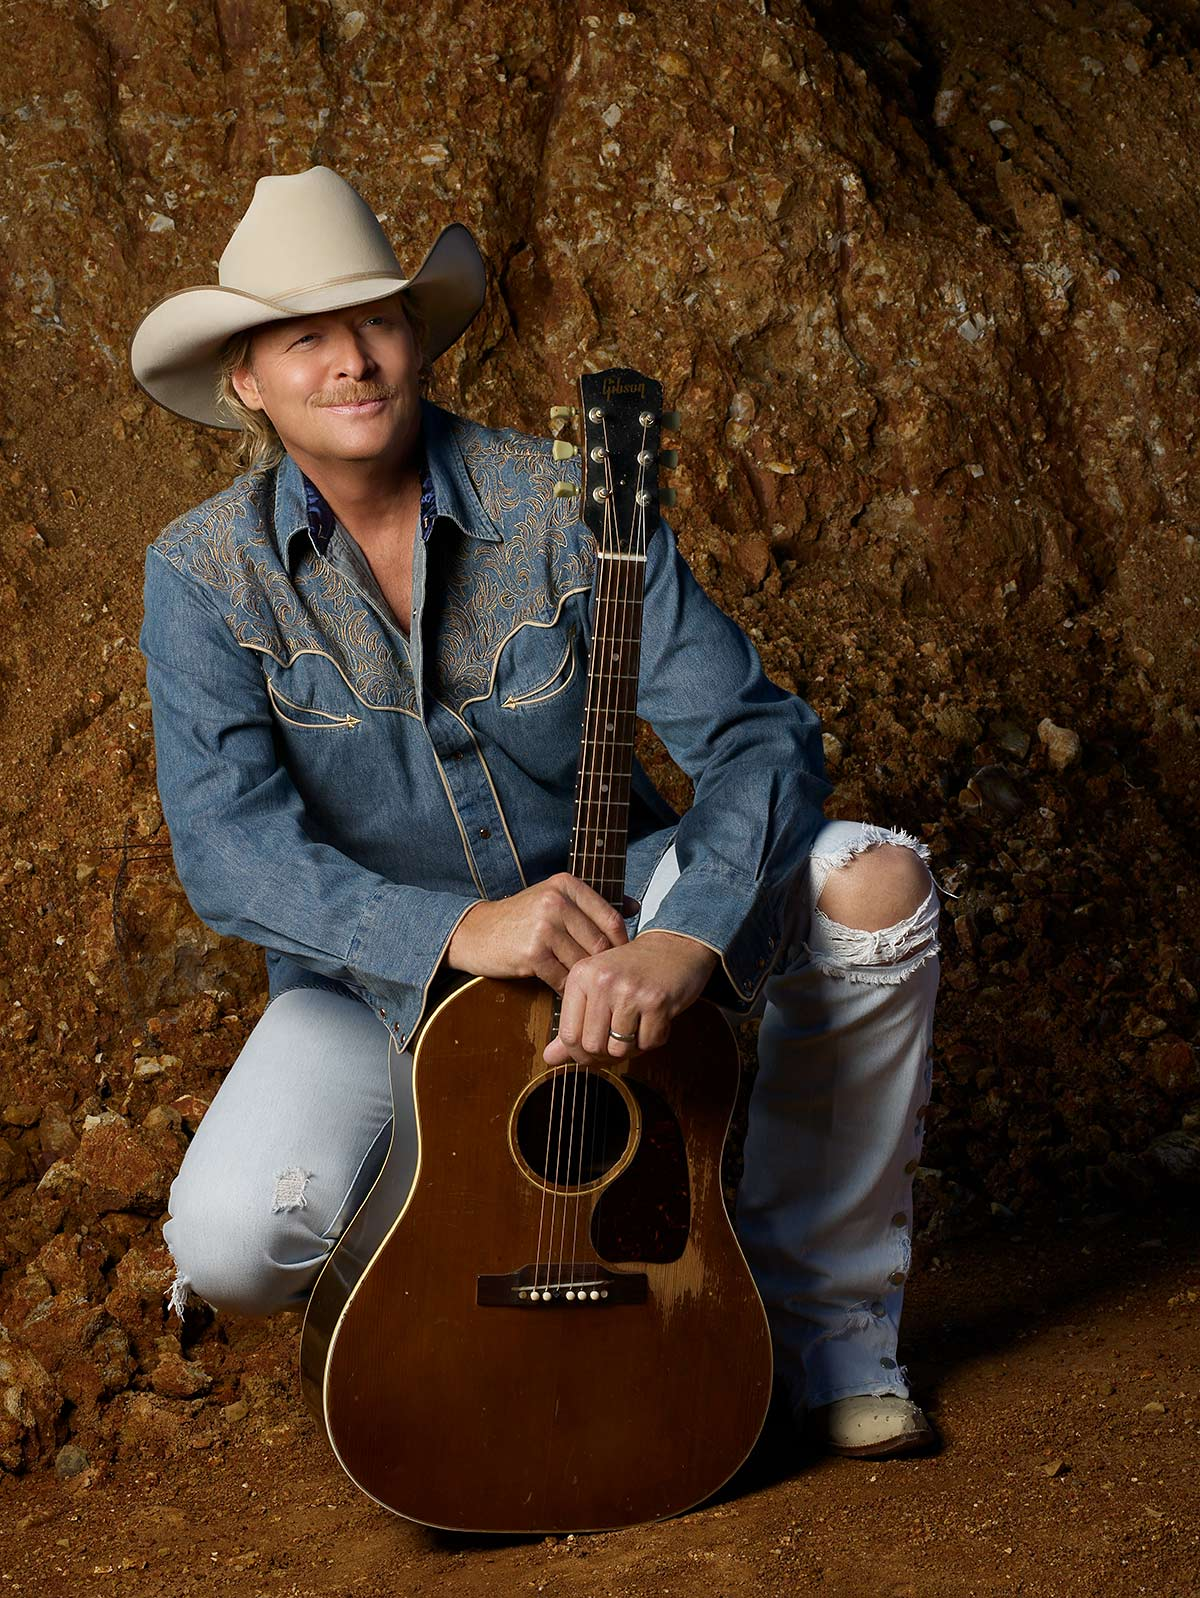 Image of Alan Jackson crouched down on one knee embracing his acoustic, brown guitar and wearing a blue cowboy shirt and tan colored hat